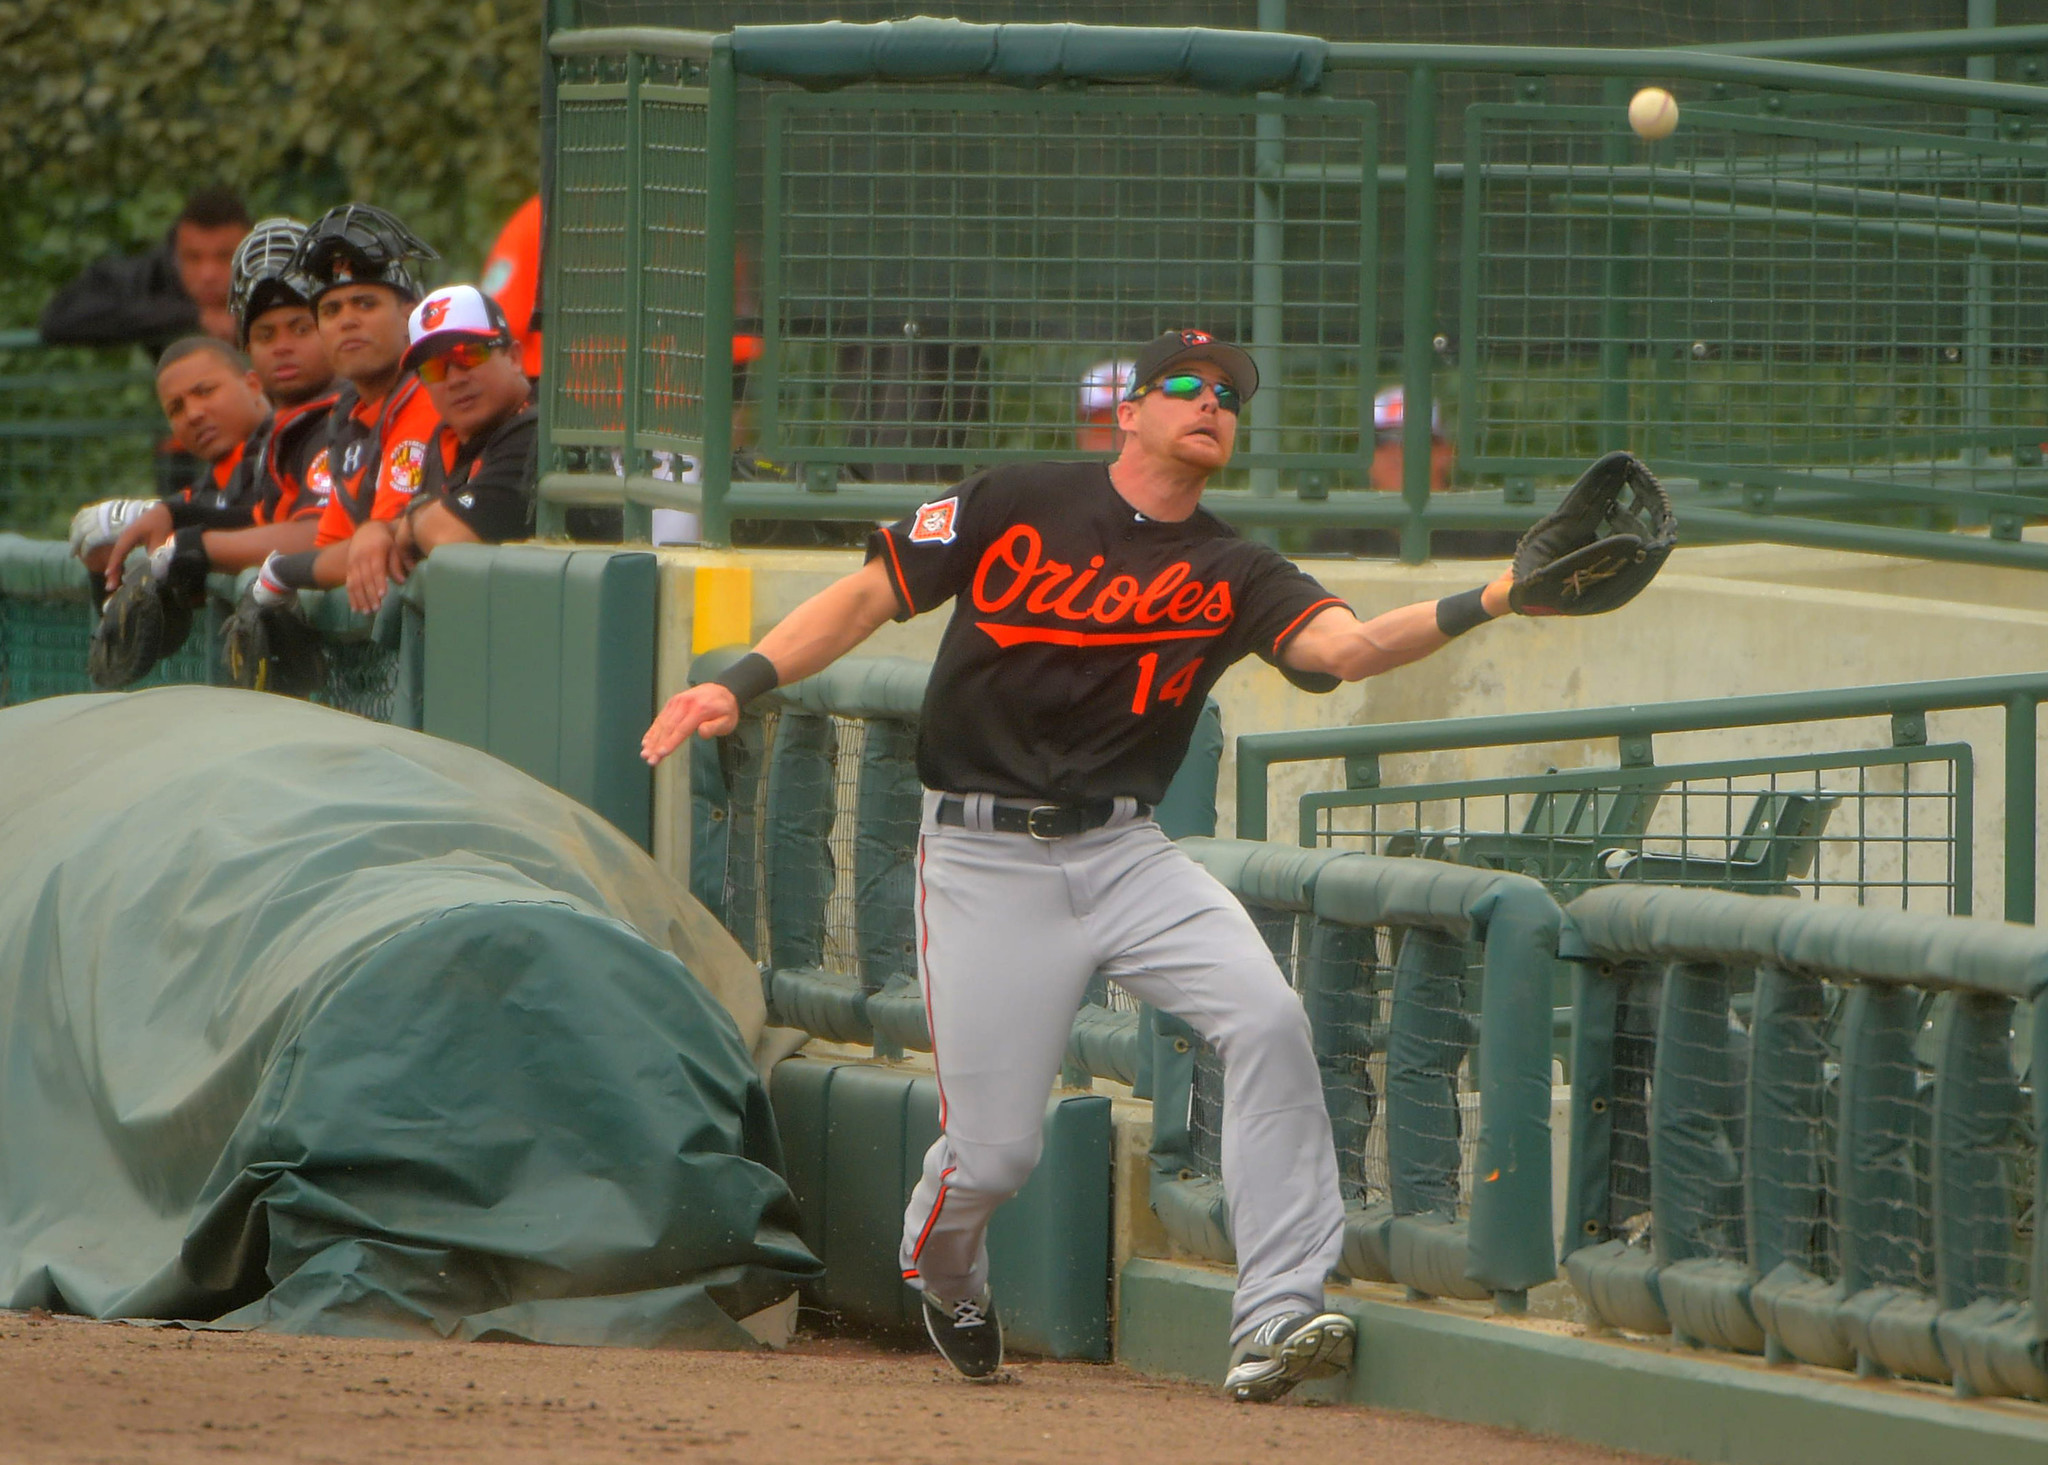 Bs-sp-orioles-spring-training-0326-20170325